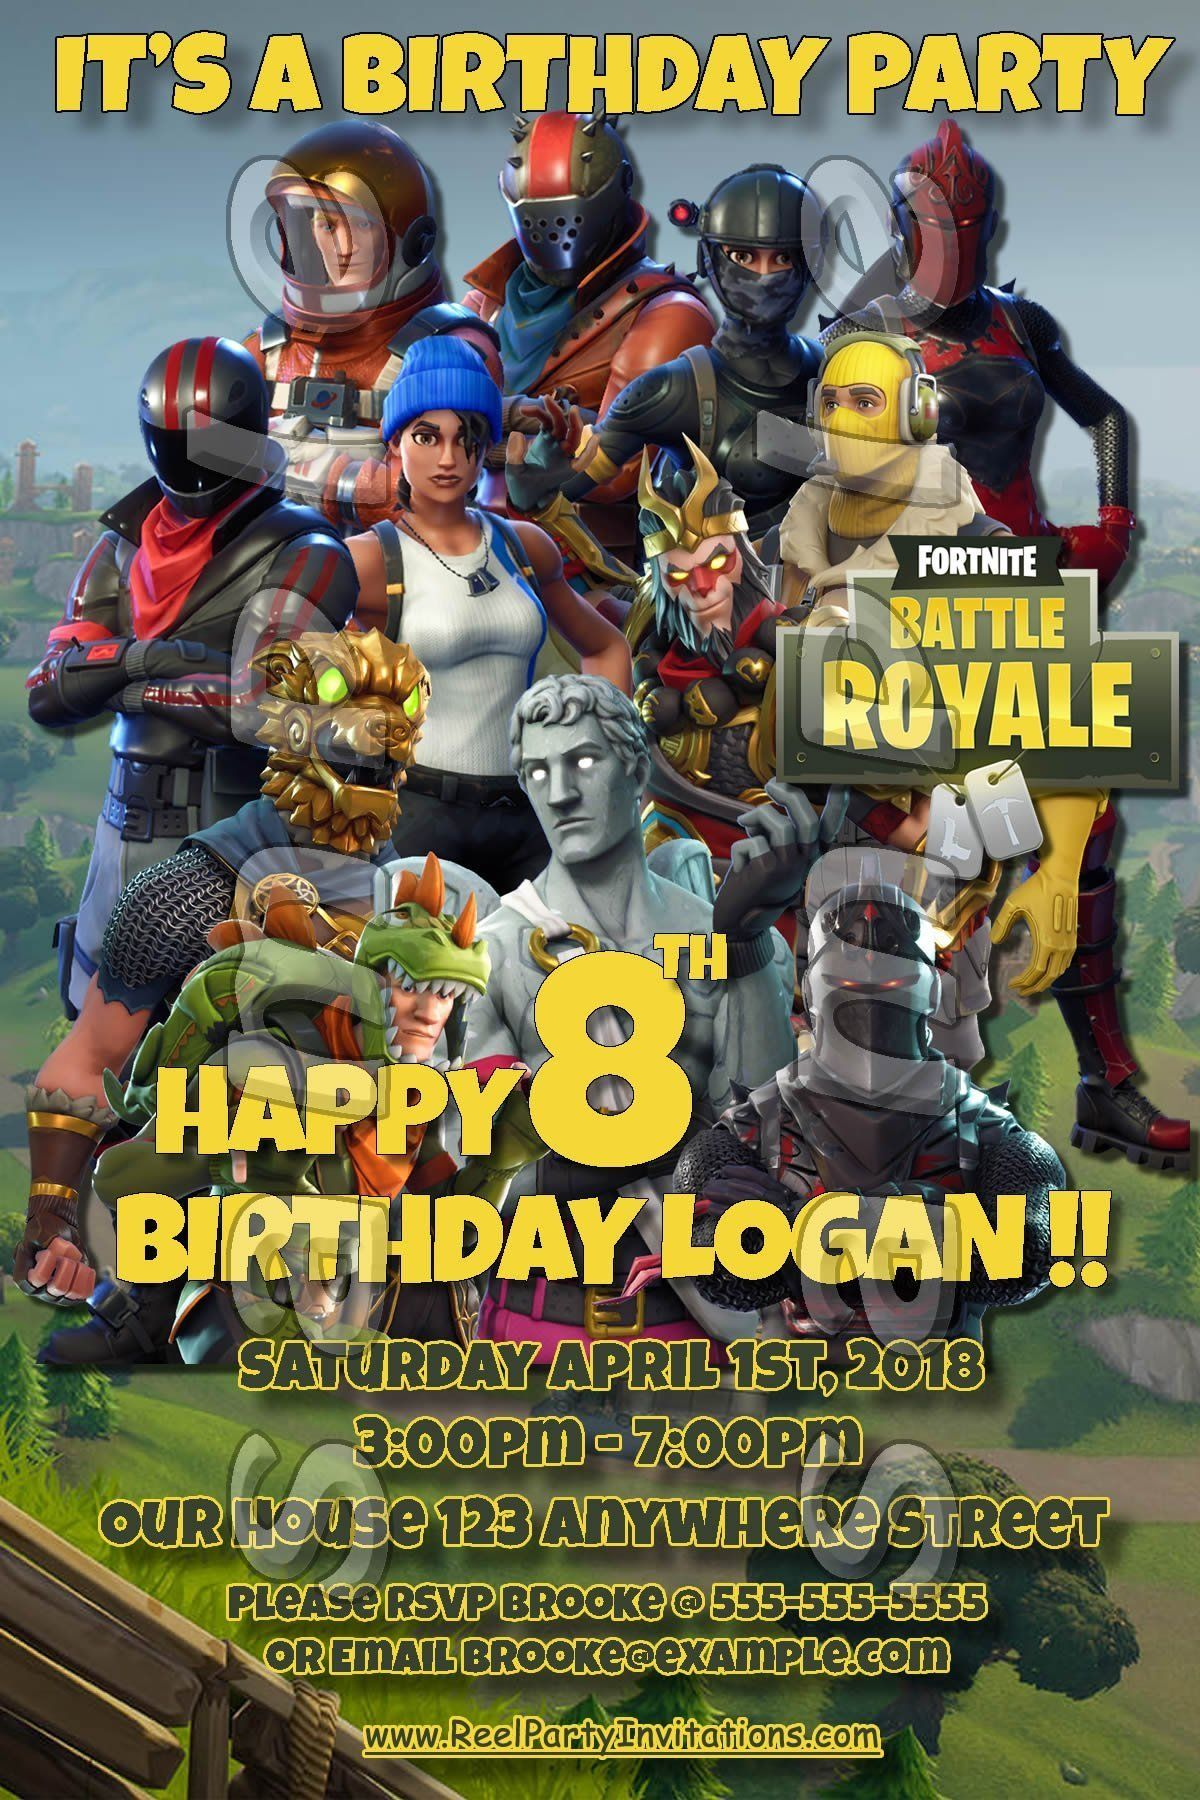 Fortnite 4x6 printed birthday party invitations with